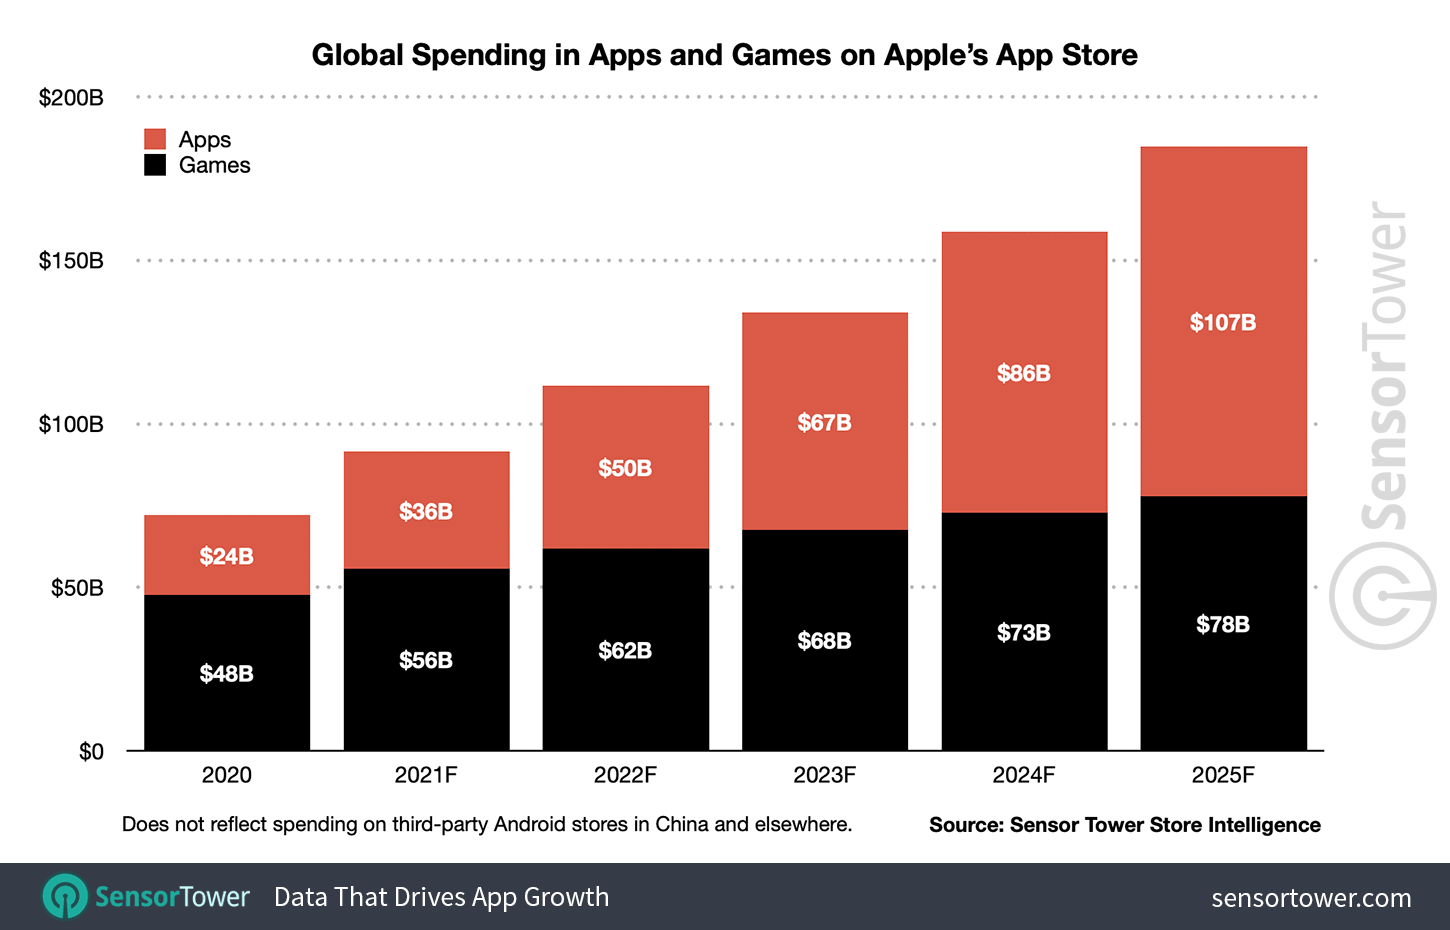 Consumer spending in non-game apps will surpass mobile games in 2024